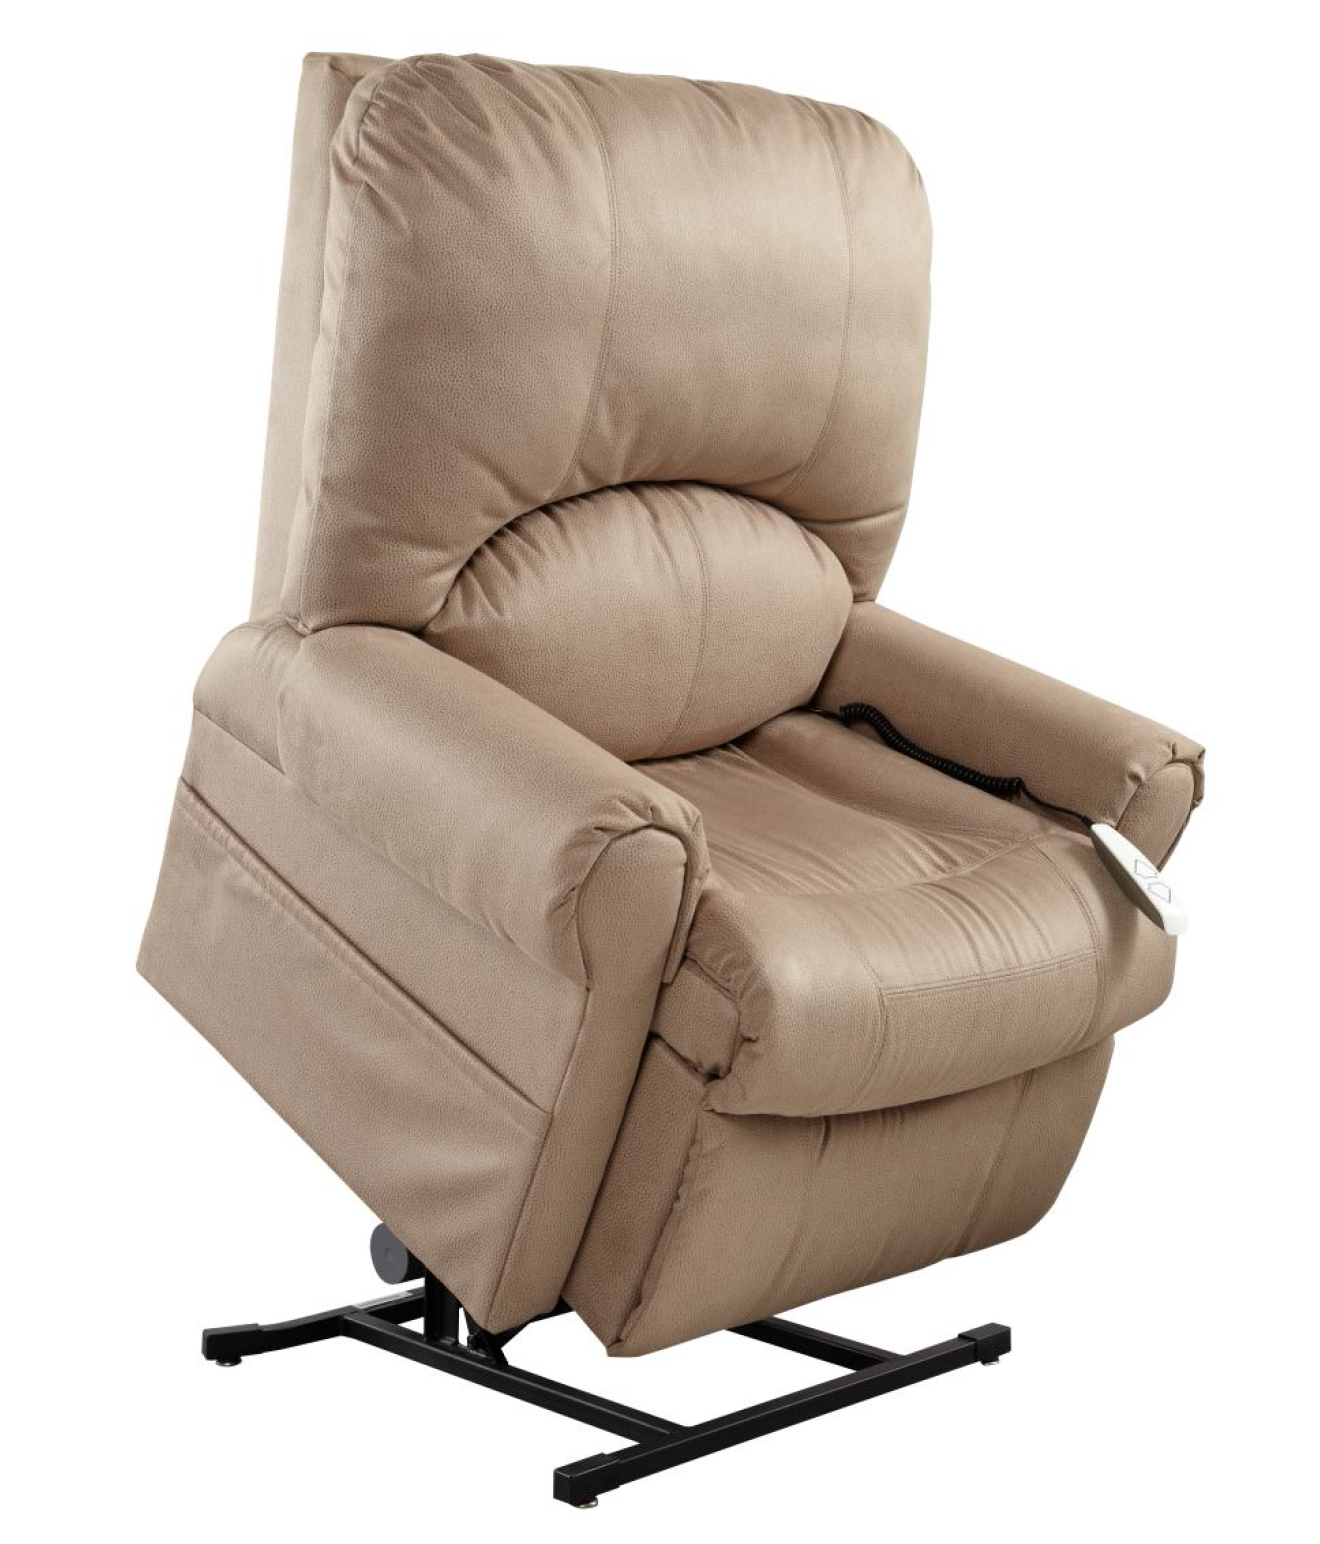 Mega Motion AS 6001 Torch Electric Power Recline Easy Comfort Lift Chair  Recliner